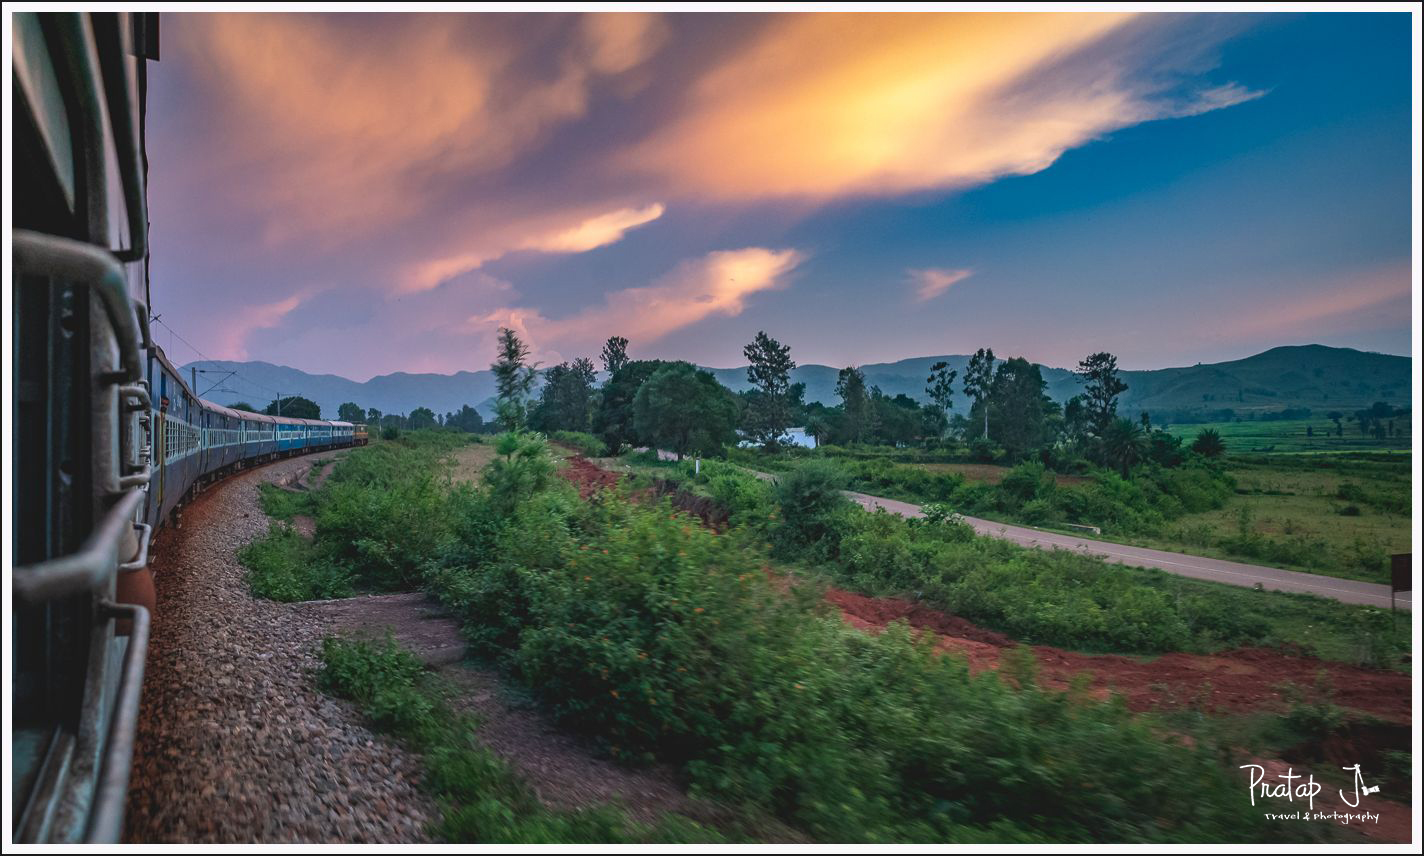 Araku Valley by train